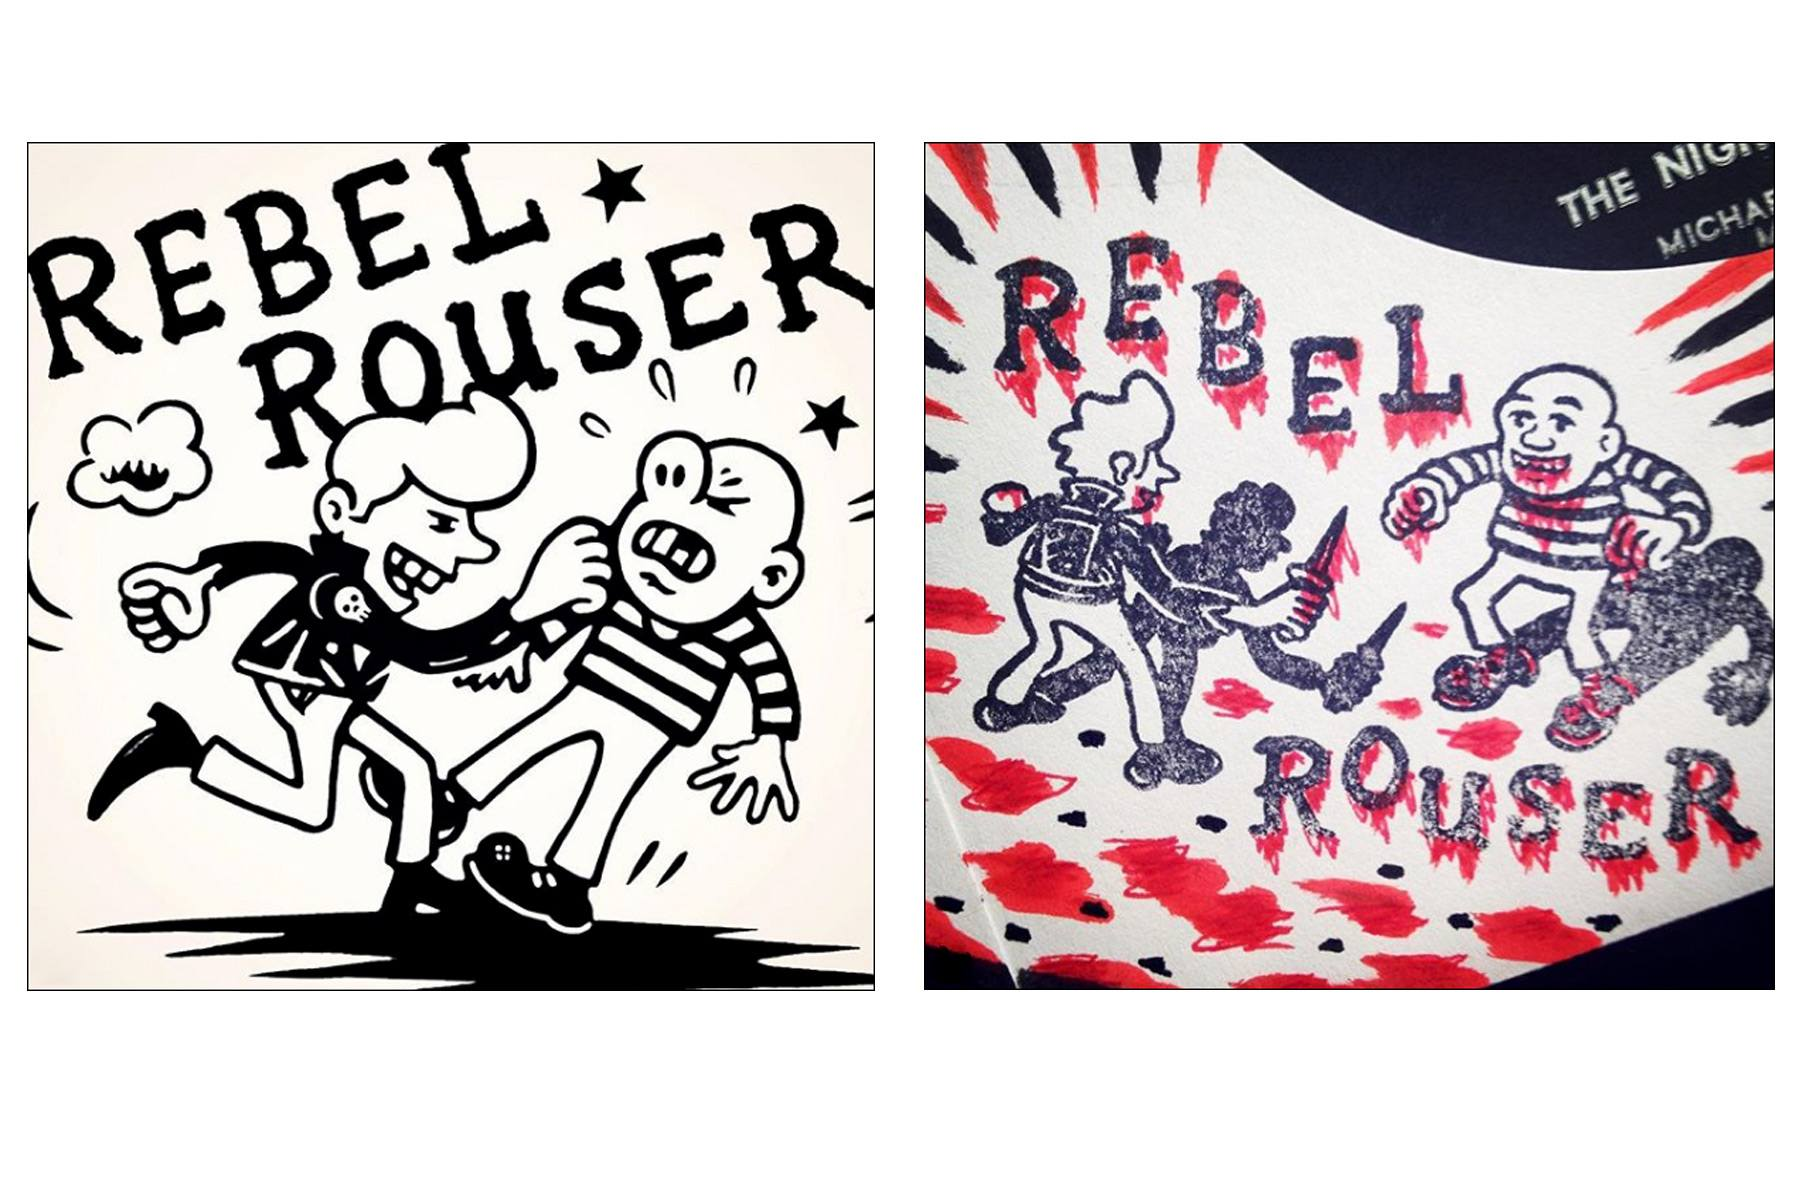 Rebel Rouser record store drawings by NYC artist Avi Spivak. Ponyboy magazine.